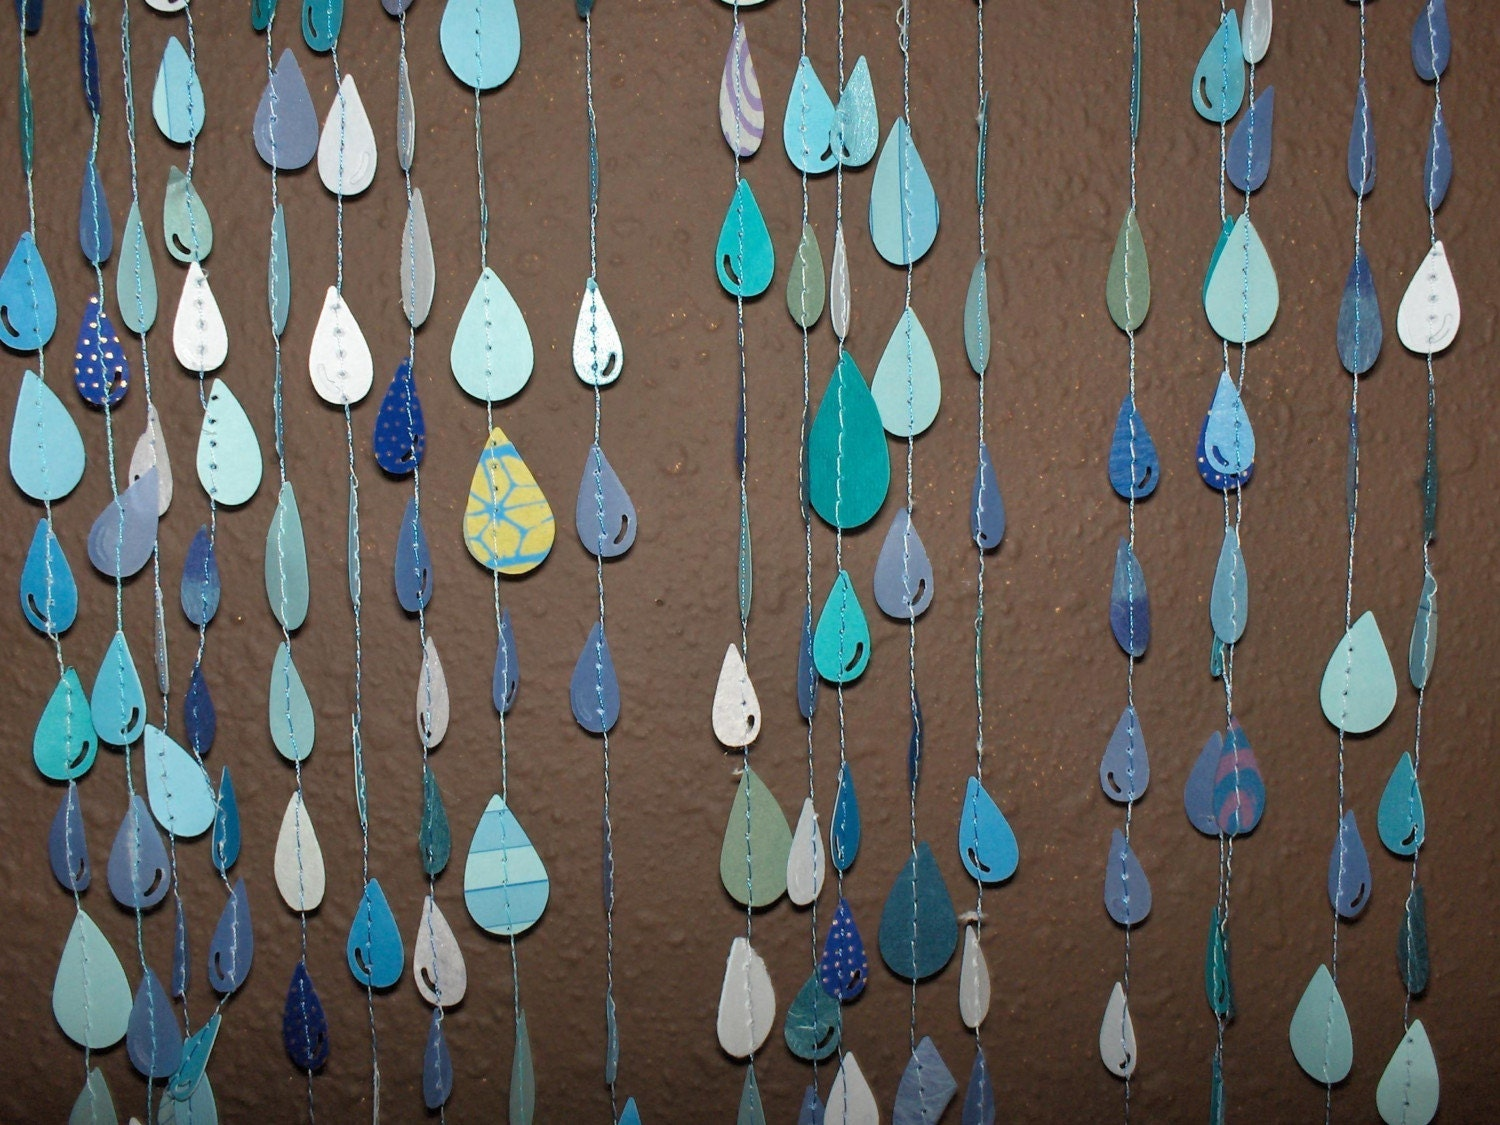 Sewn paper raindrop decorations for Decoration paper